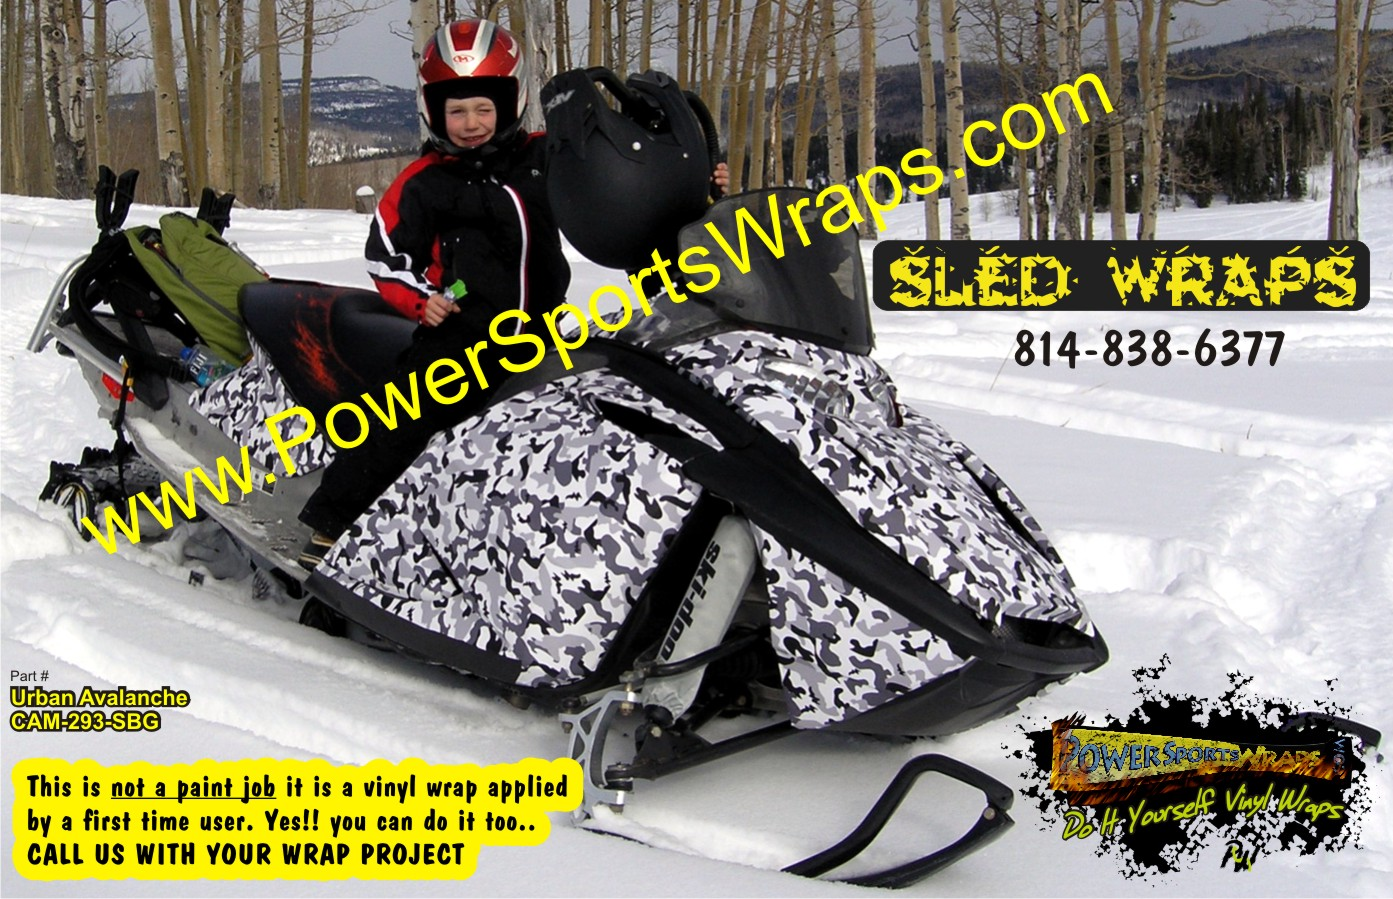 Camo vinyl for snowmobiles, custom colors, do it yourself wraps www.powersportswraps.com 814-838-6377